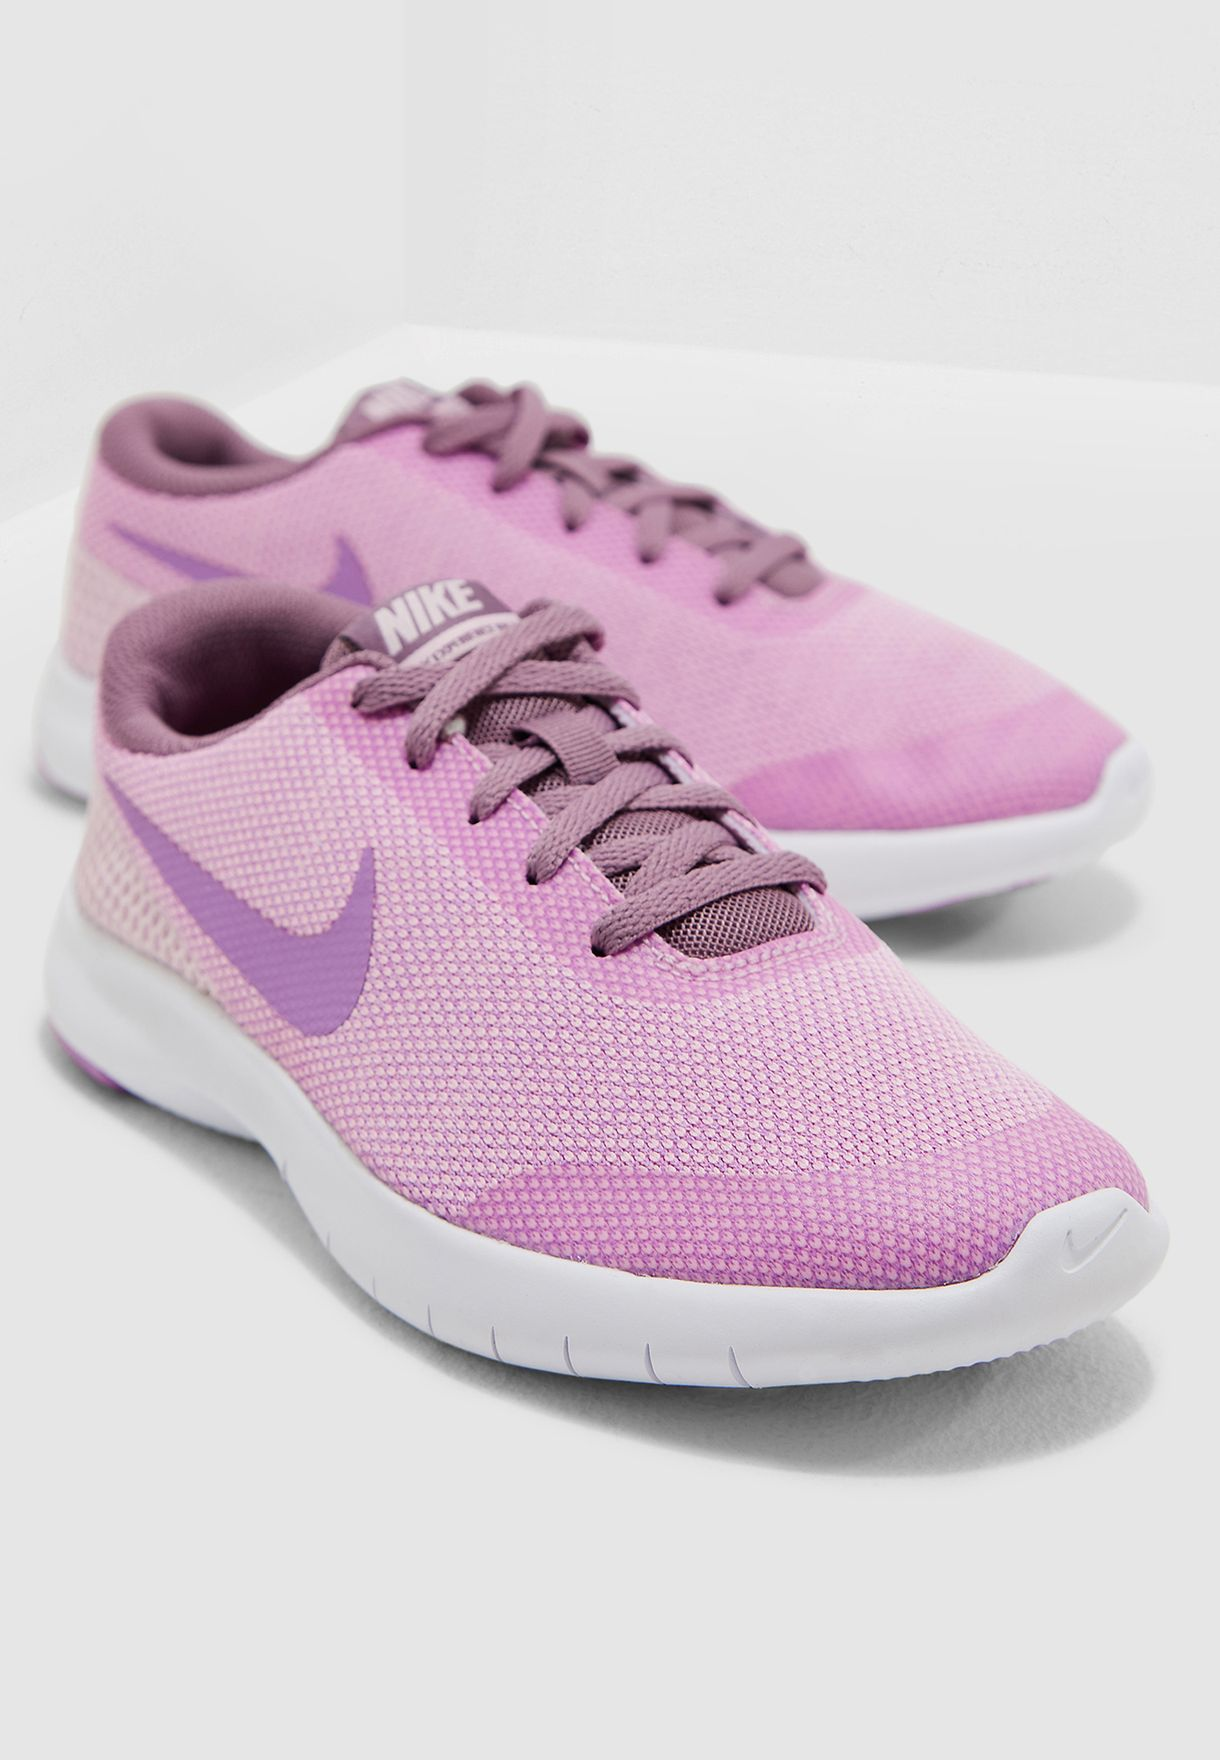 09dccd02e9a Shop Nike purple Youth Flex Experience RN 7 943287-602 for Kids in ...